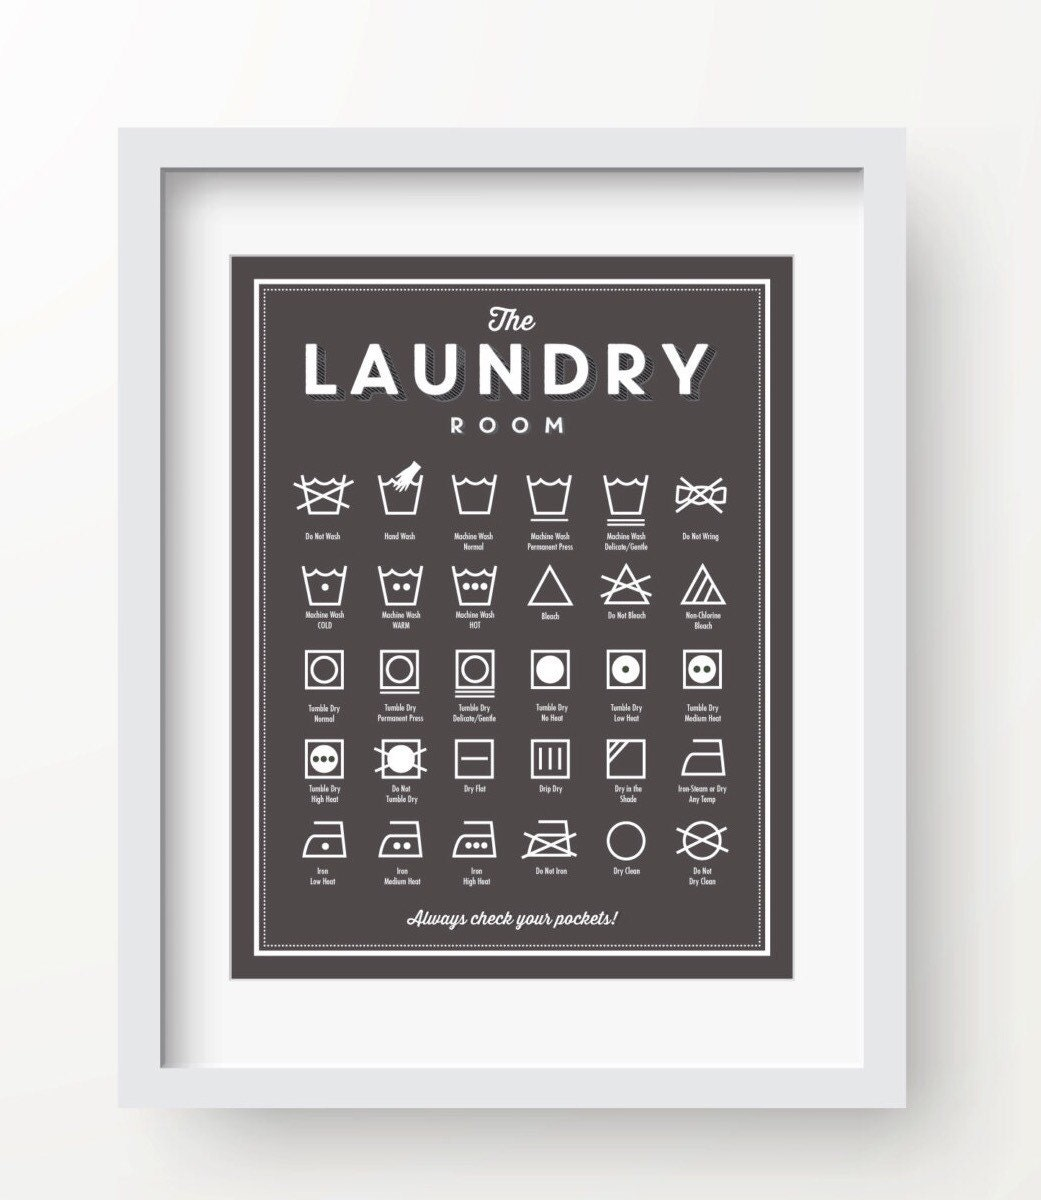 Laundry Room Decor SLATE Color Wall Guide Printable